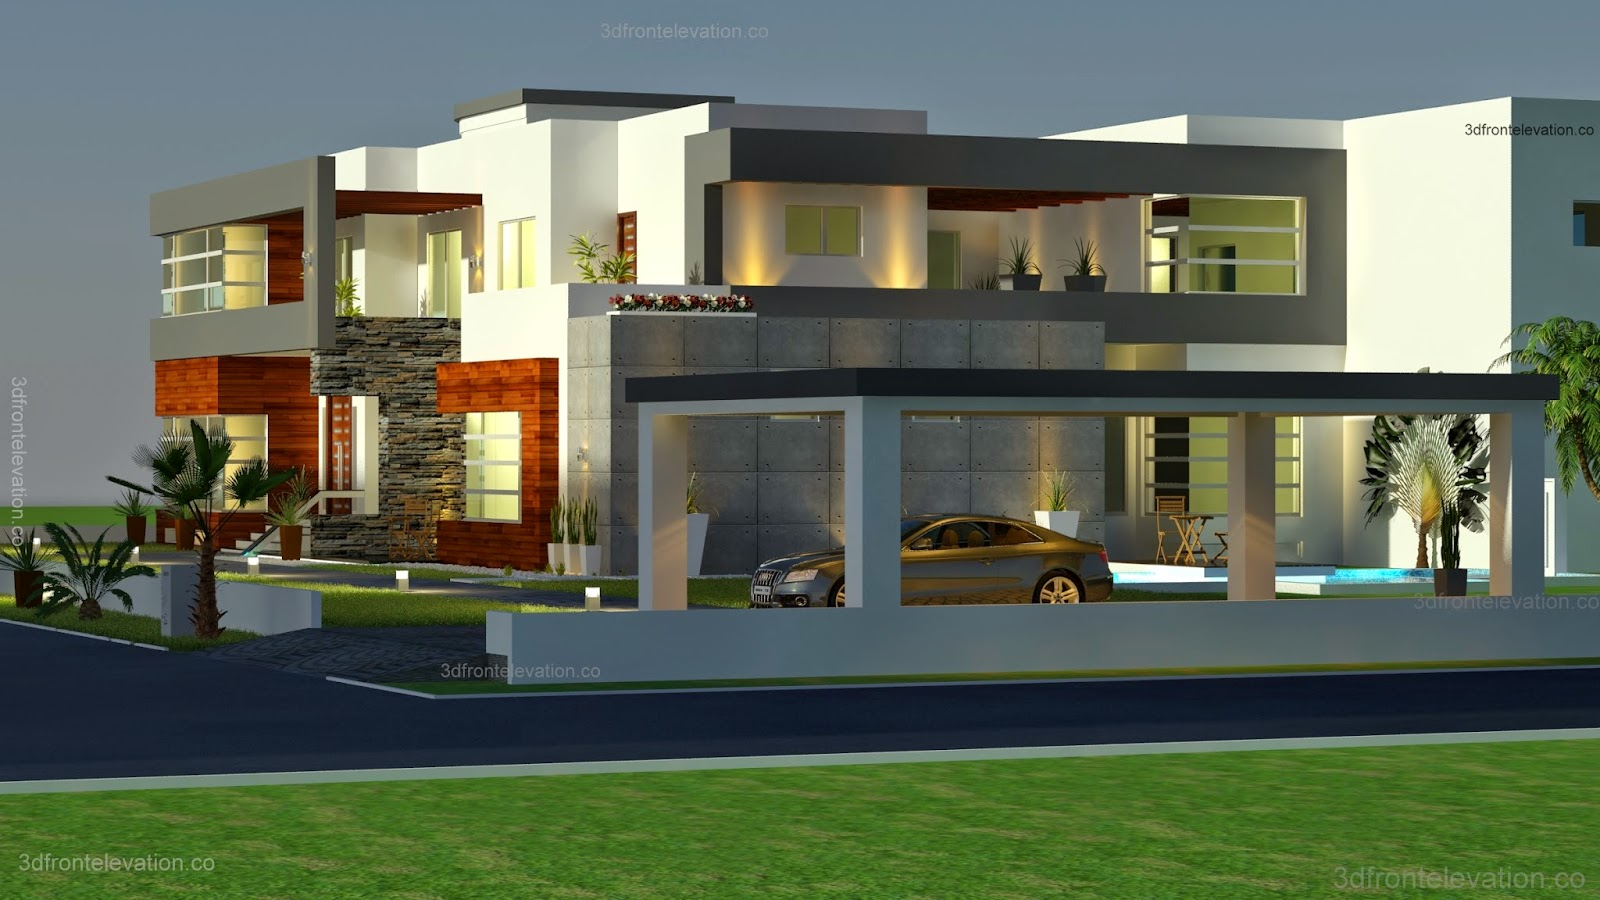 3d front 500 square meter modern contemporary house plan design 3d front elevation - Contemporary house designs ...